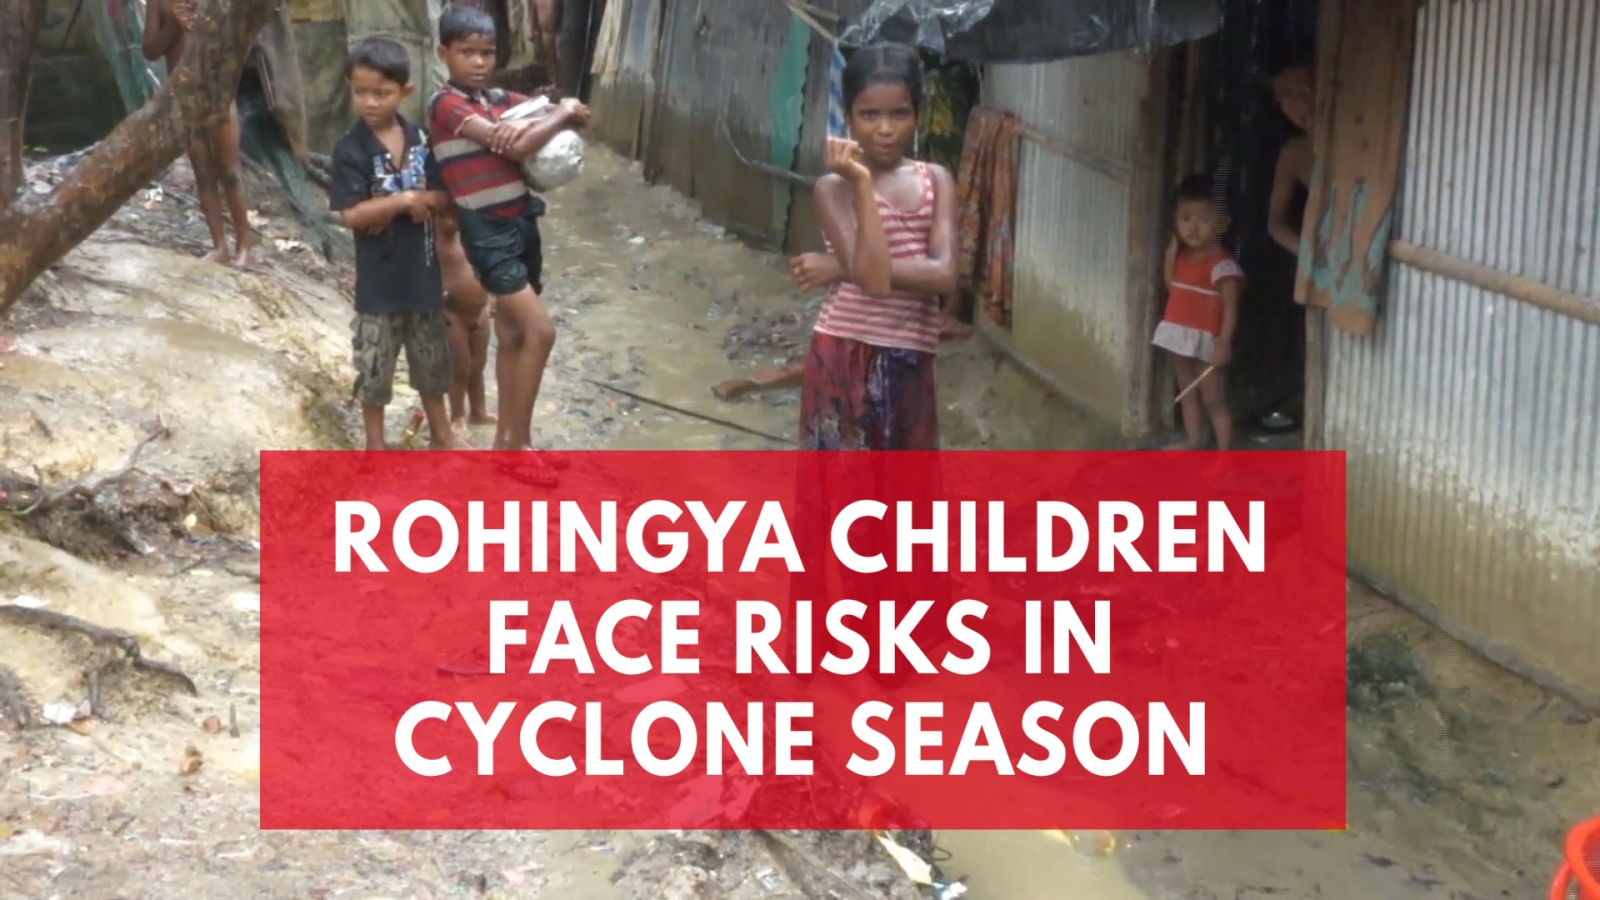 u-n-warns-rohingya-refugees-are-at-risk-as-cyclone-season-approaches